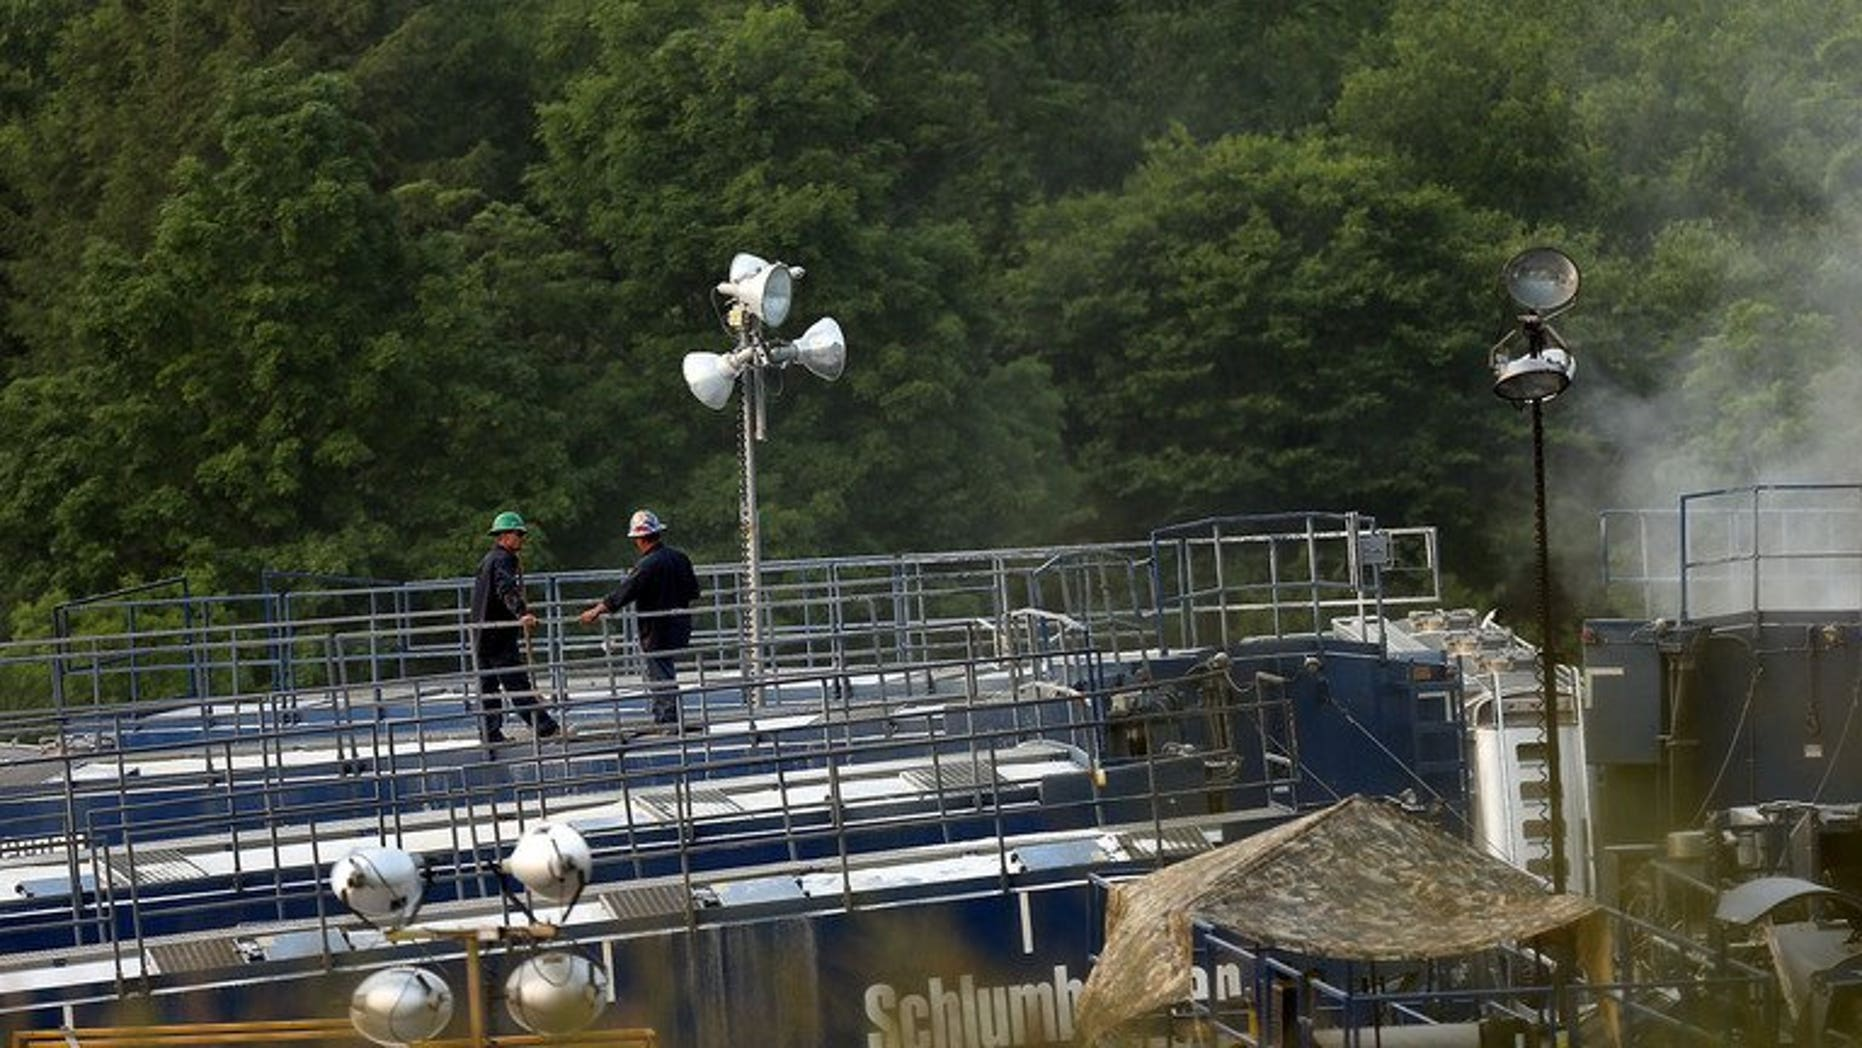 """Men work on a natural gas valve at a hydraulic fracturing site on June 19, 2012 in South Montrose, Pennsylvania. The government presented tax breaks for energy fracking companies to create the world's """"most generous"""" regime for shale gas extraction."""